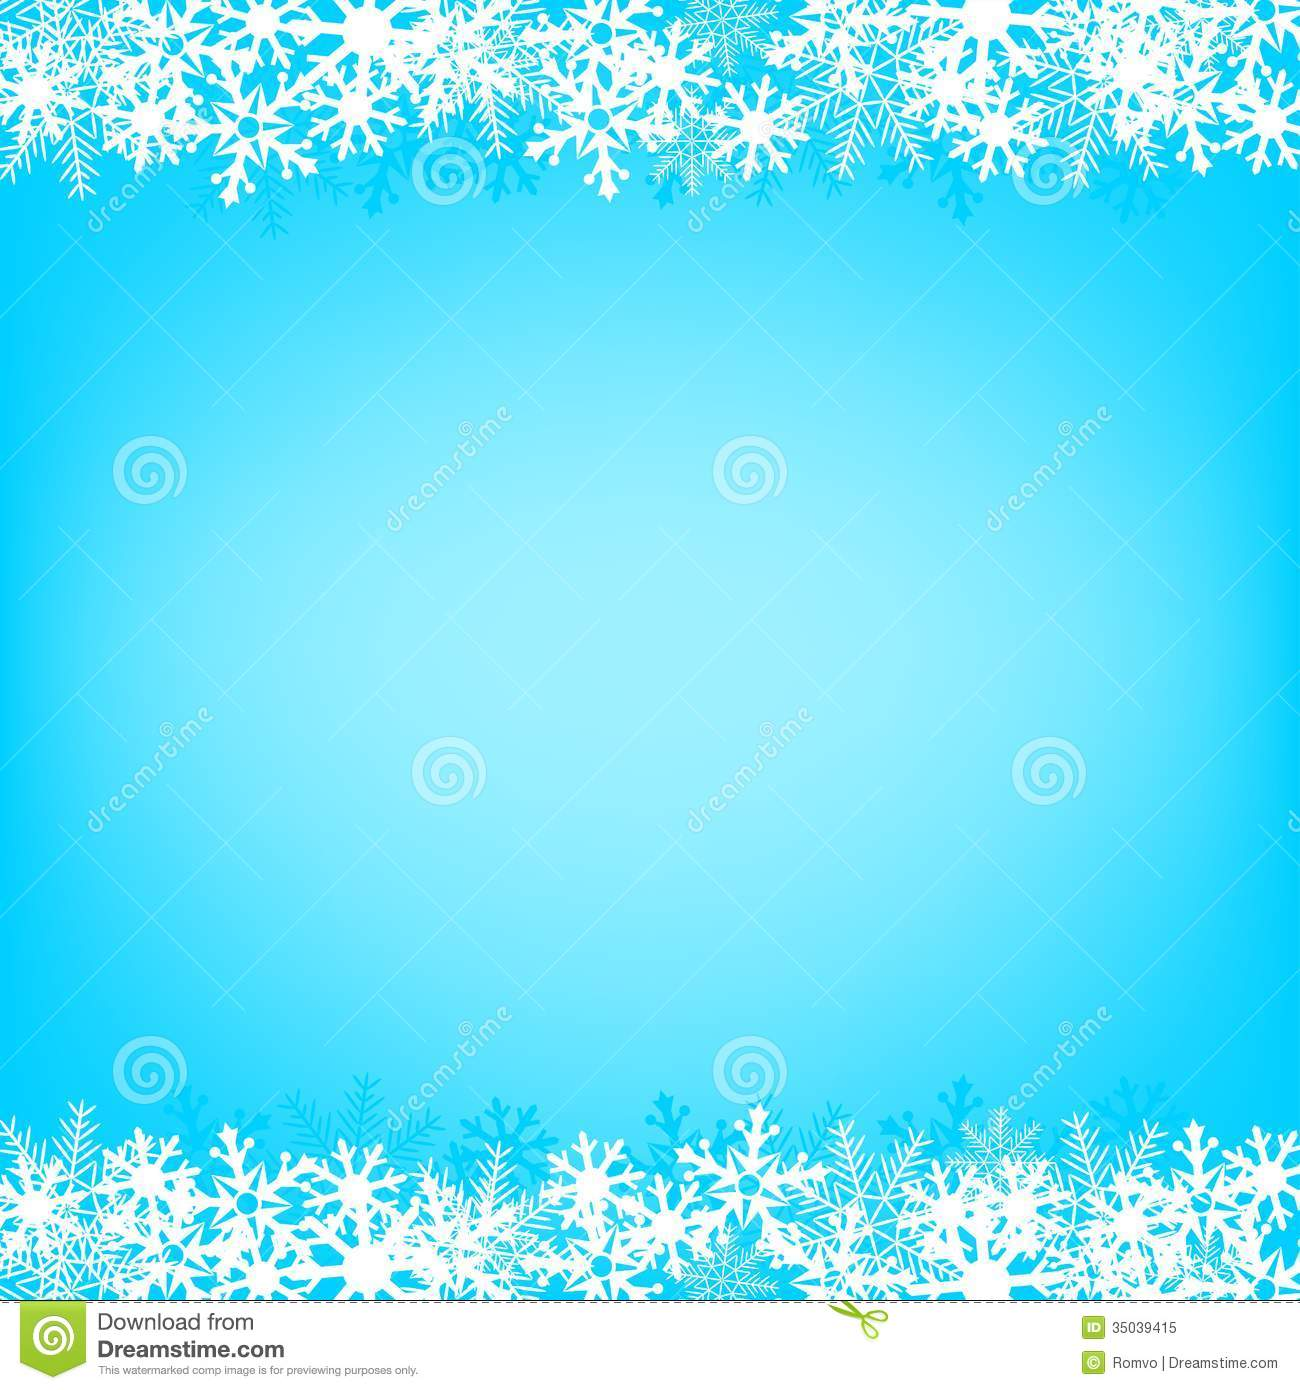 Blue Snow Background Stock Vector Illustration Of Element